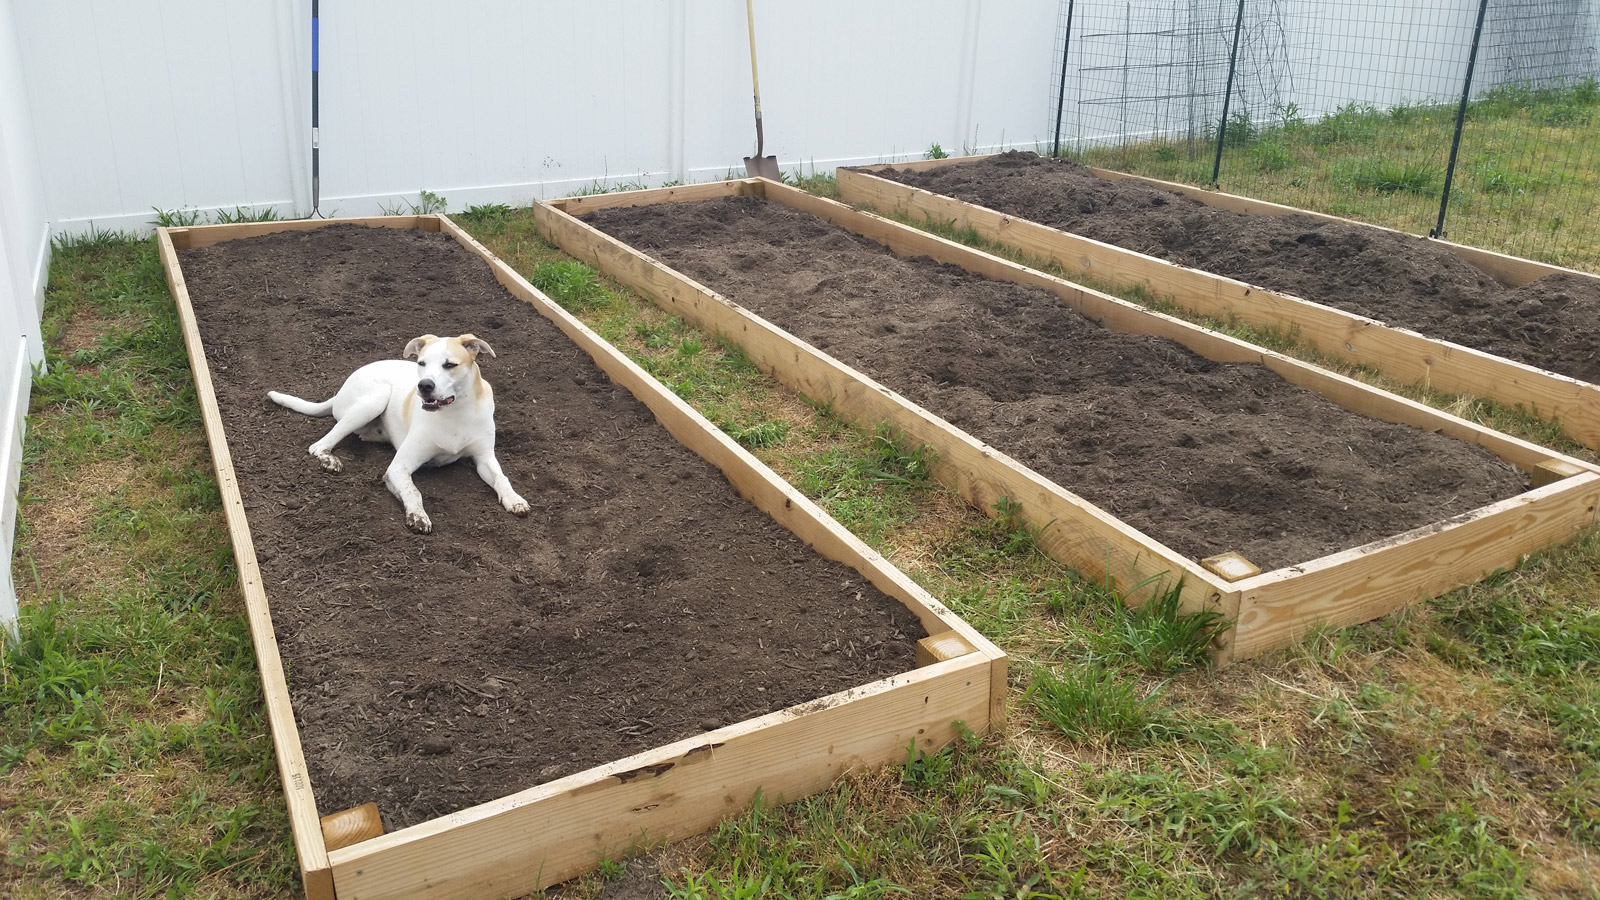 May 4th Update: Transplants In, More on the Way